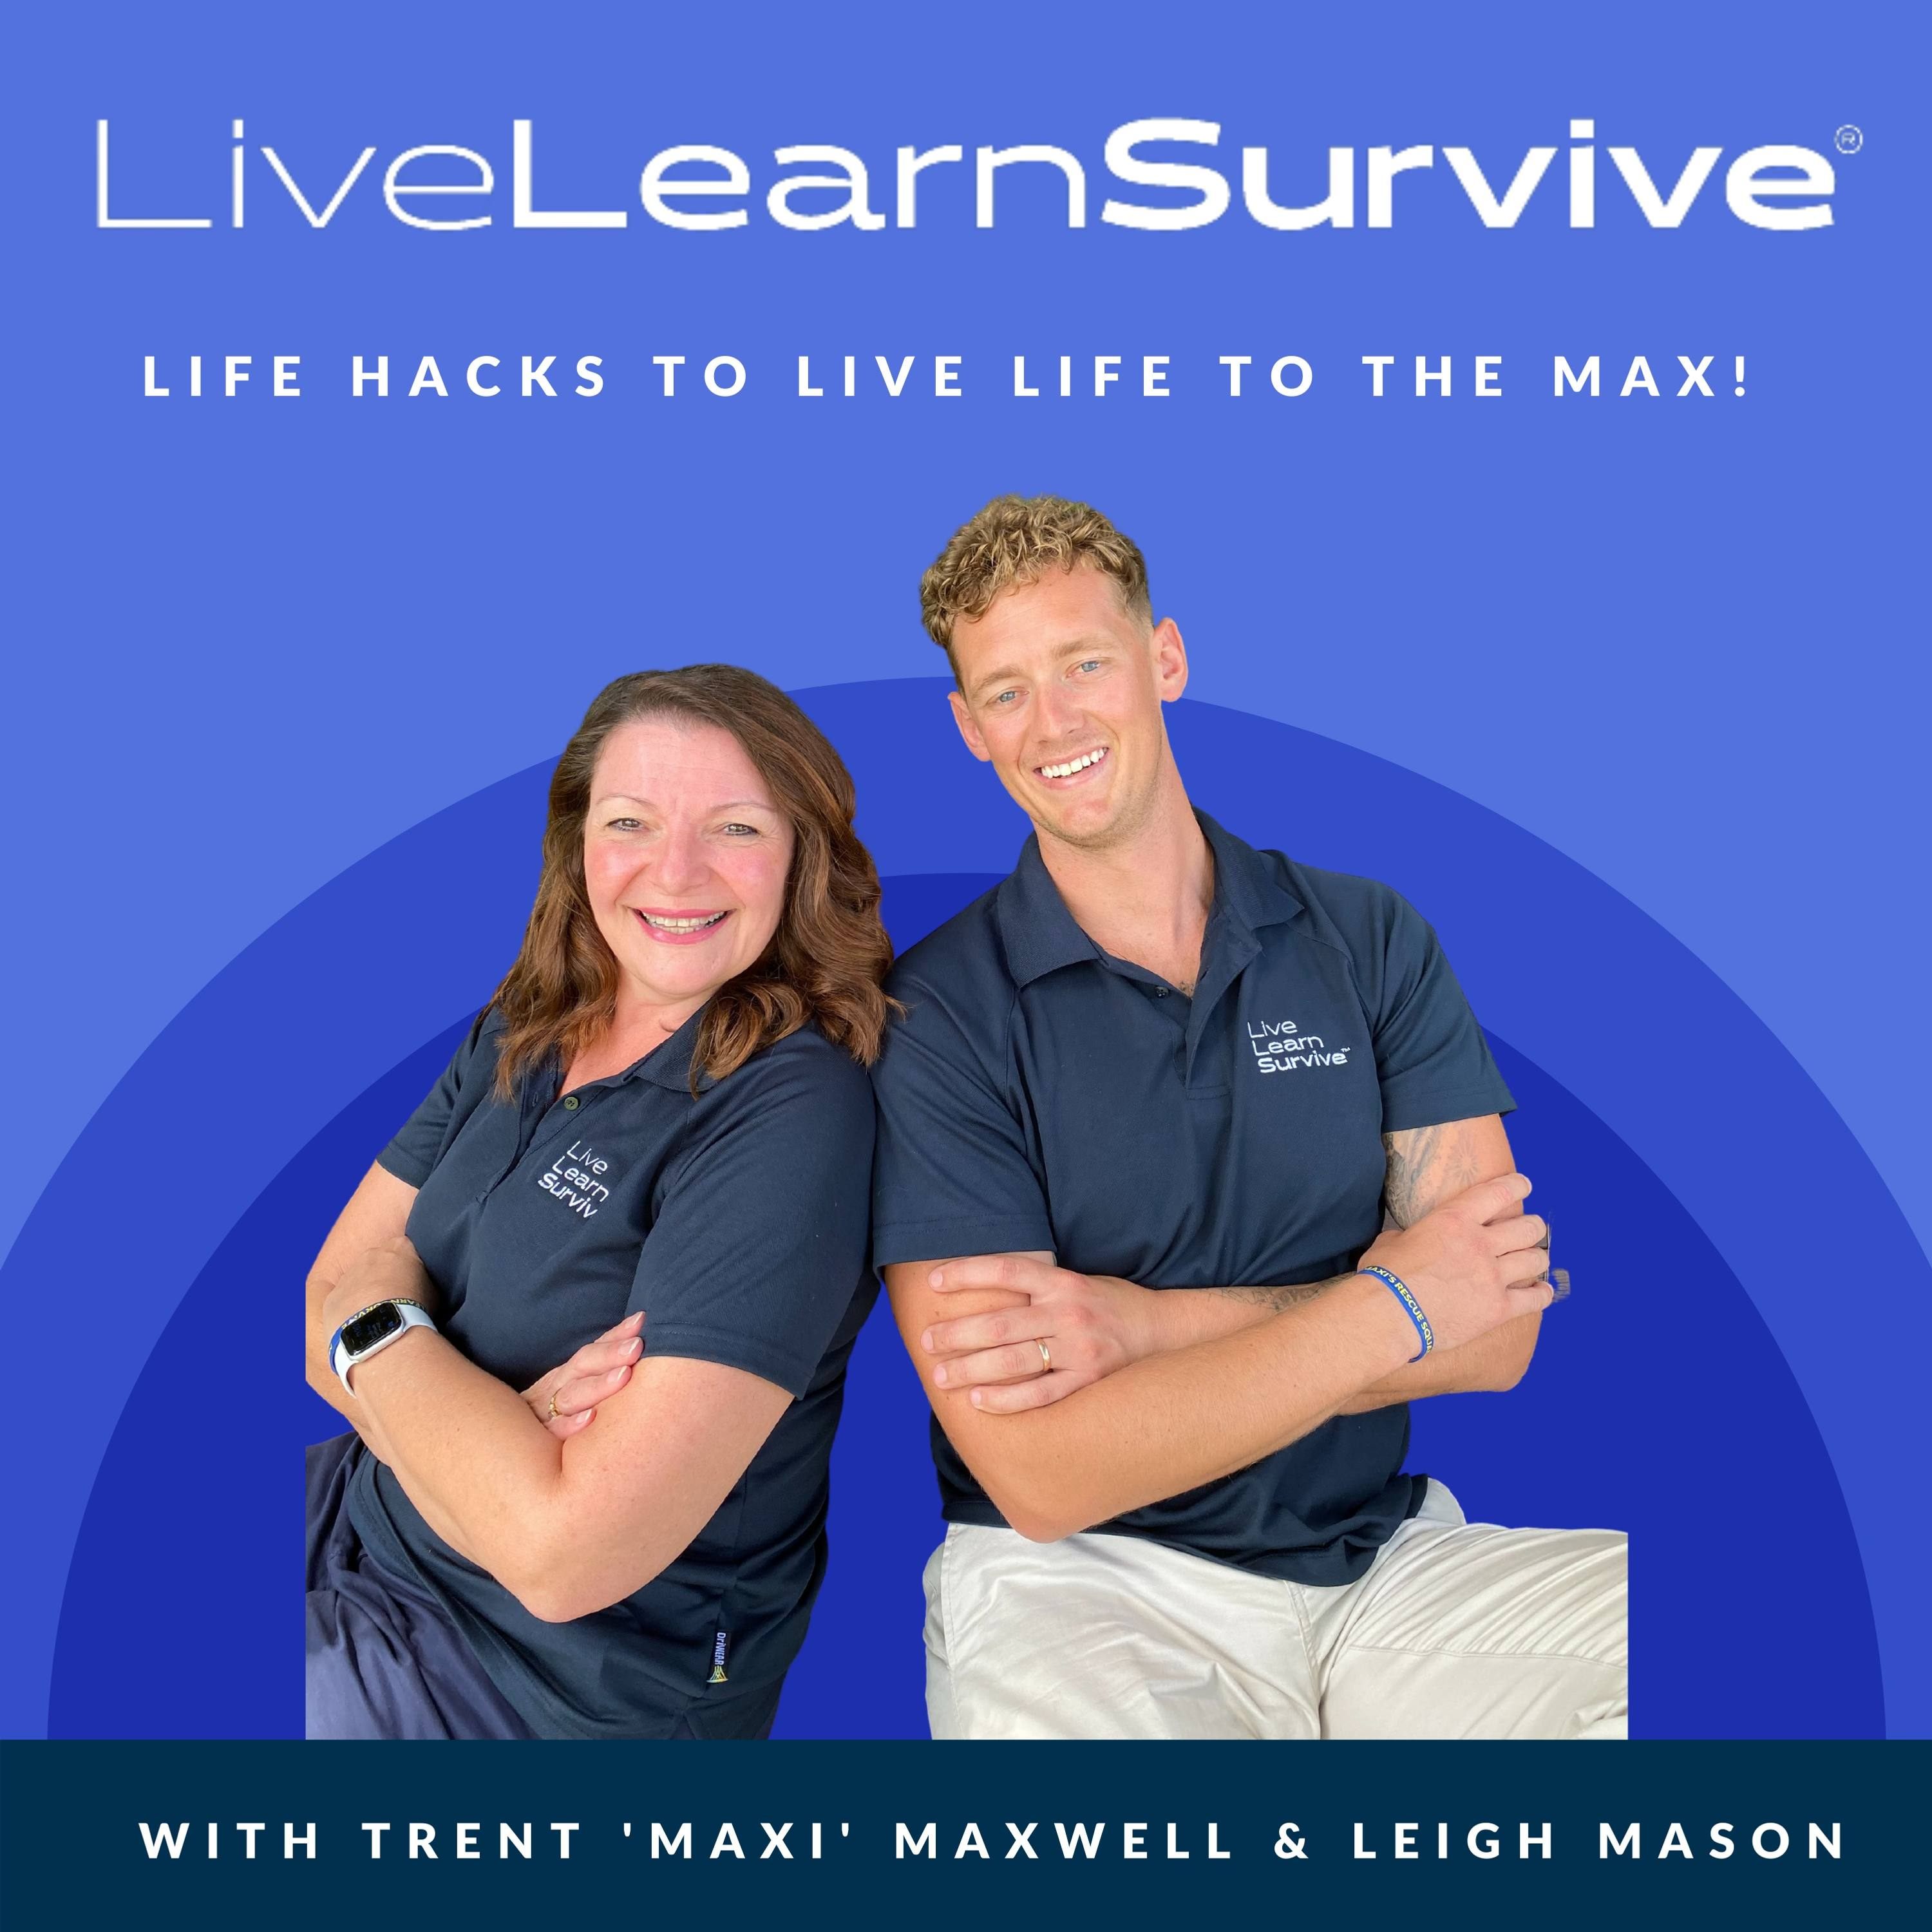 Live Learn Survive - Life hacks to live life to the Max.